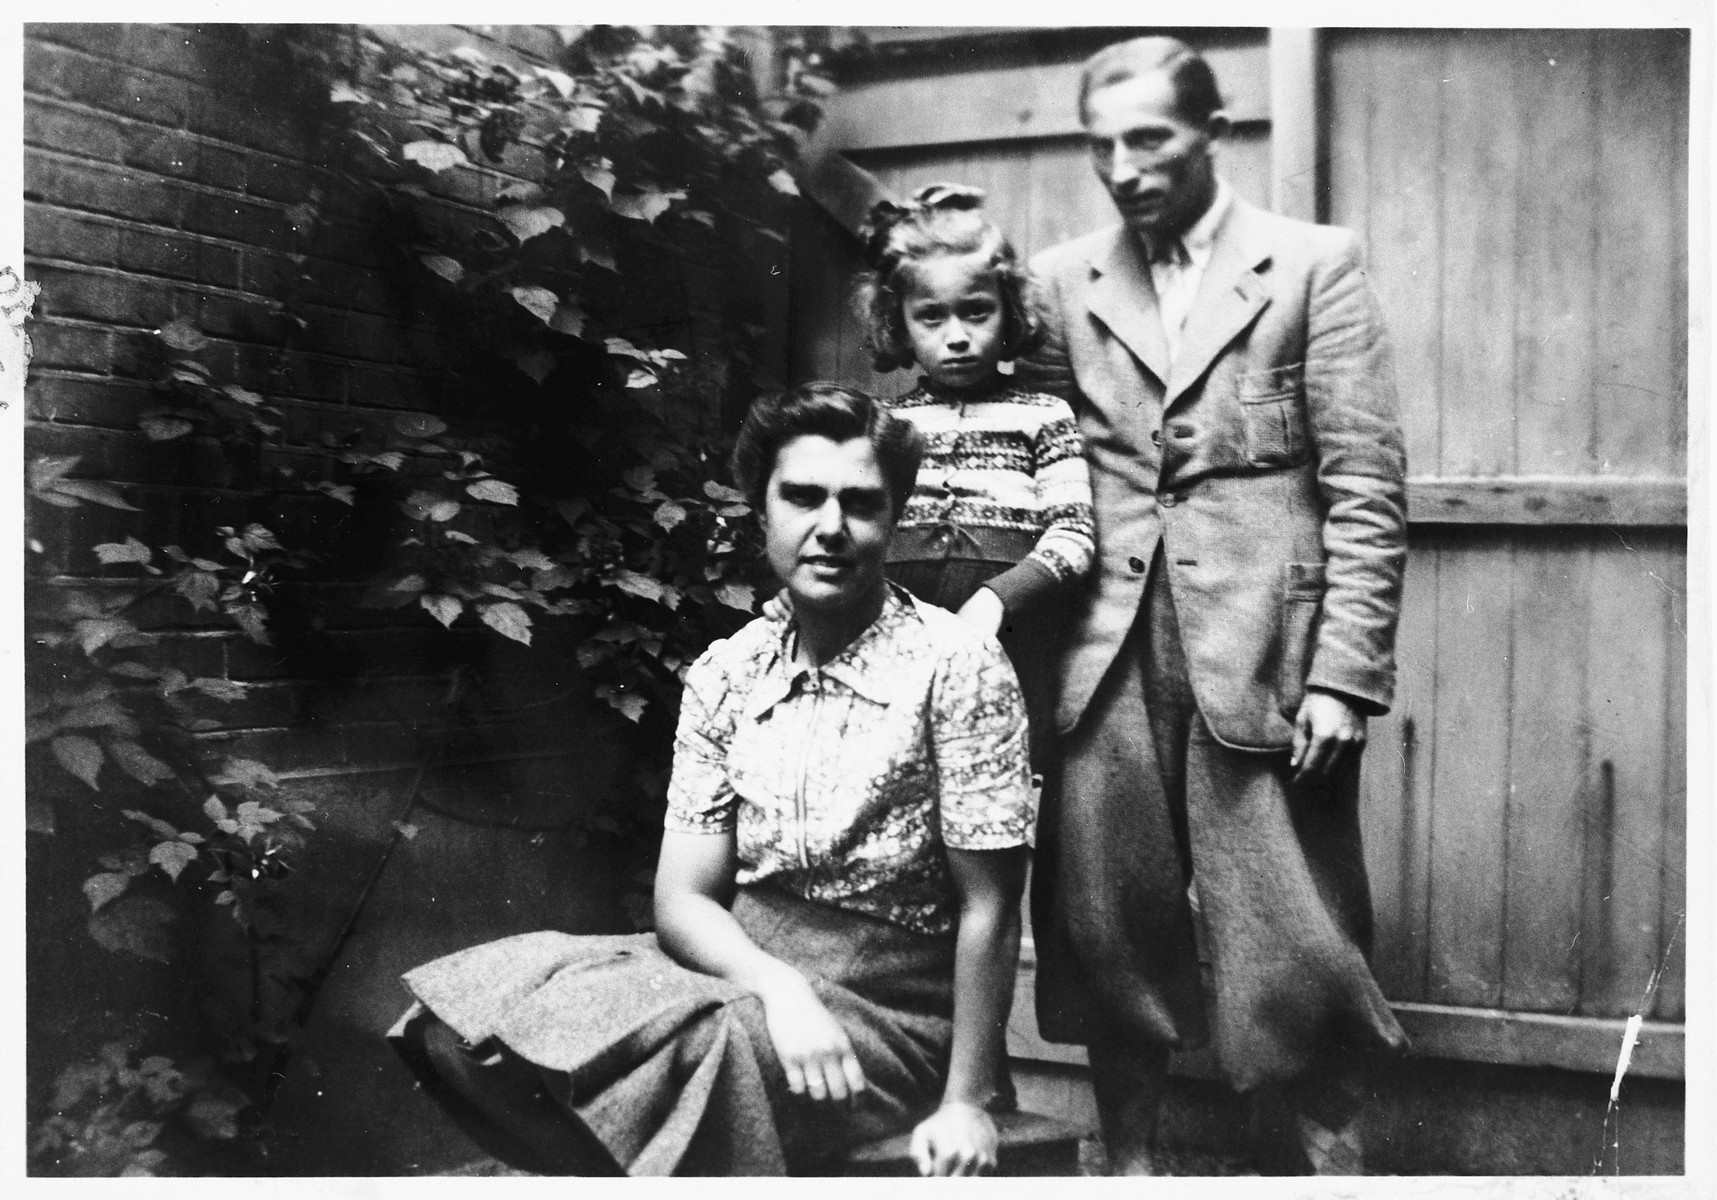 A young Jewish girl poses with the couple who hid her during the German occupation of Holland, prior to leaving their home after the war.  Pictured are Truusje Schoenfeld and her rescuers, Pedro and Truus de Bruin.